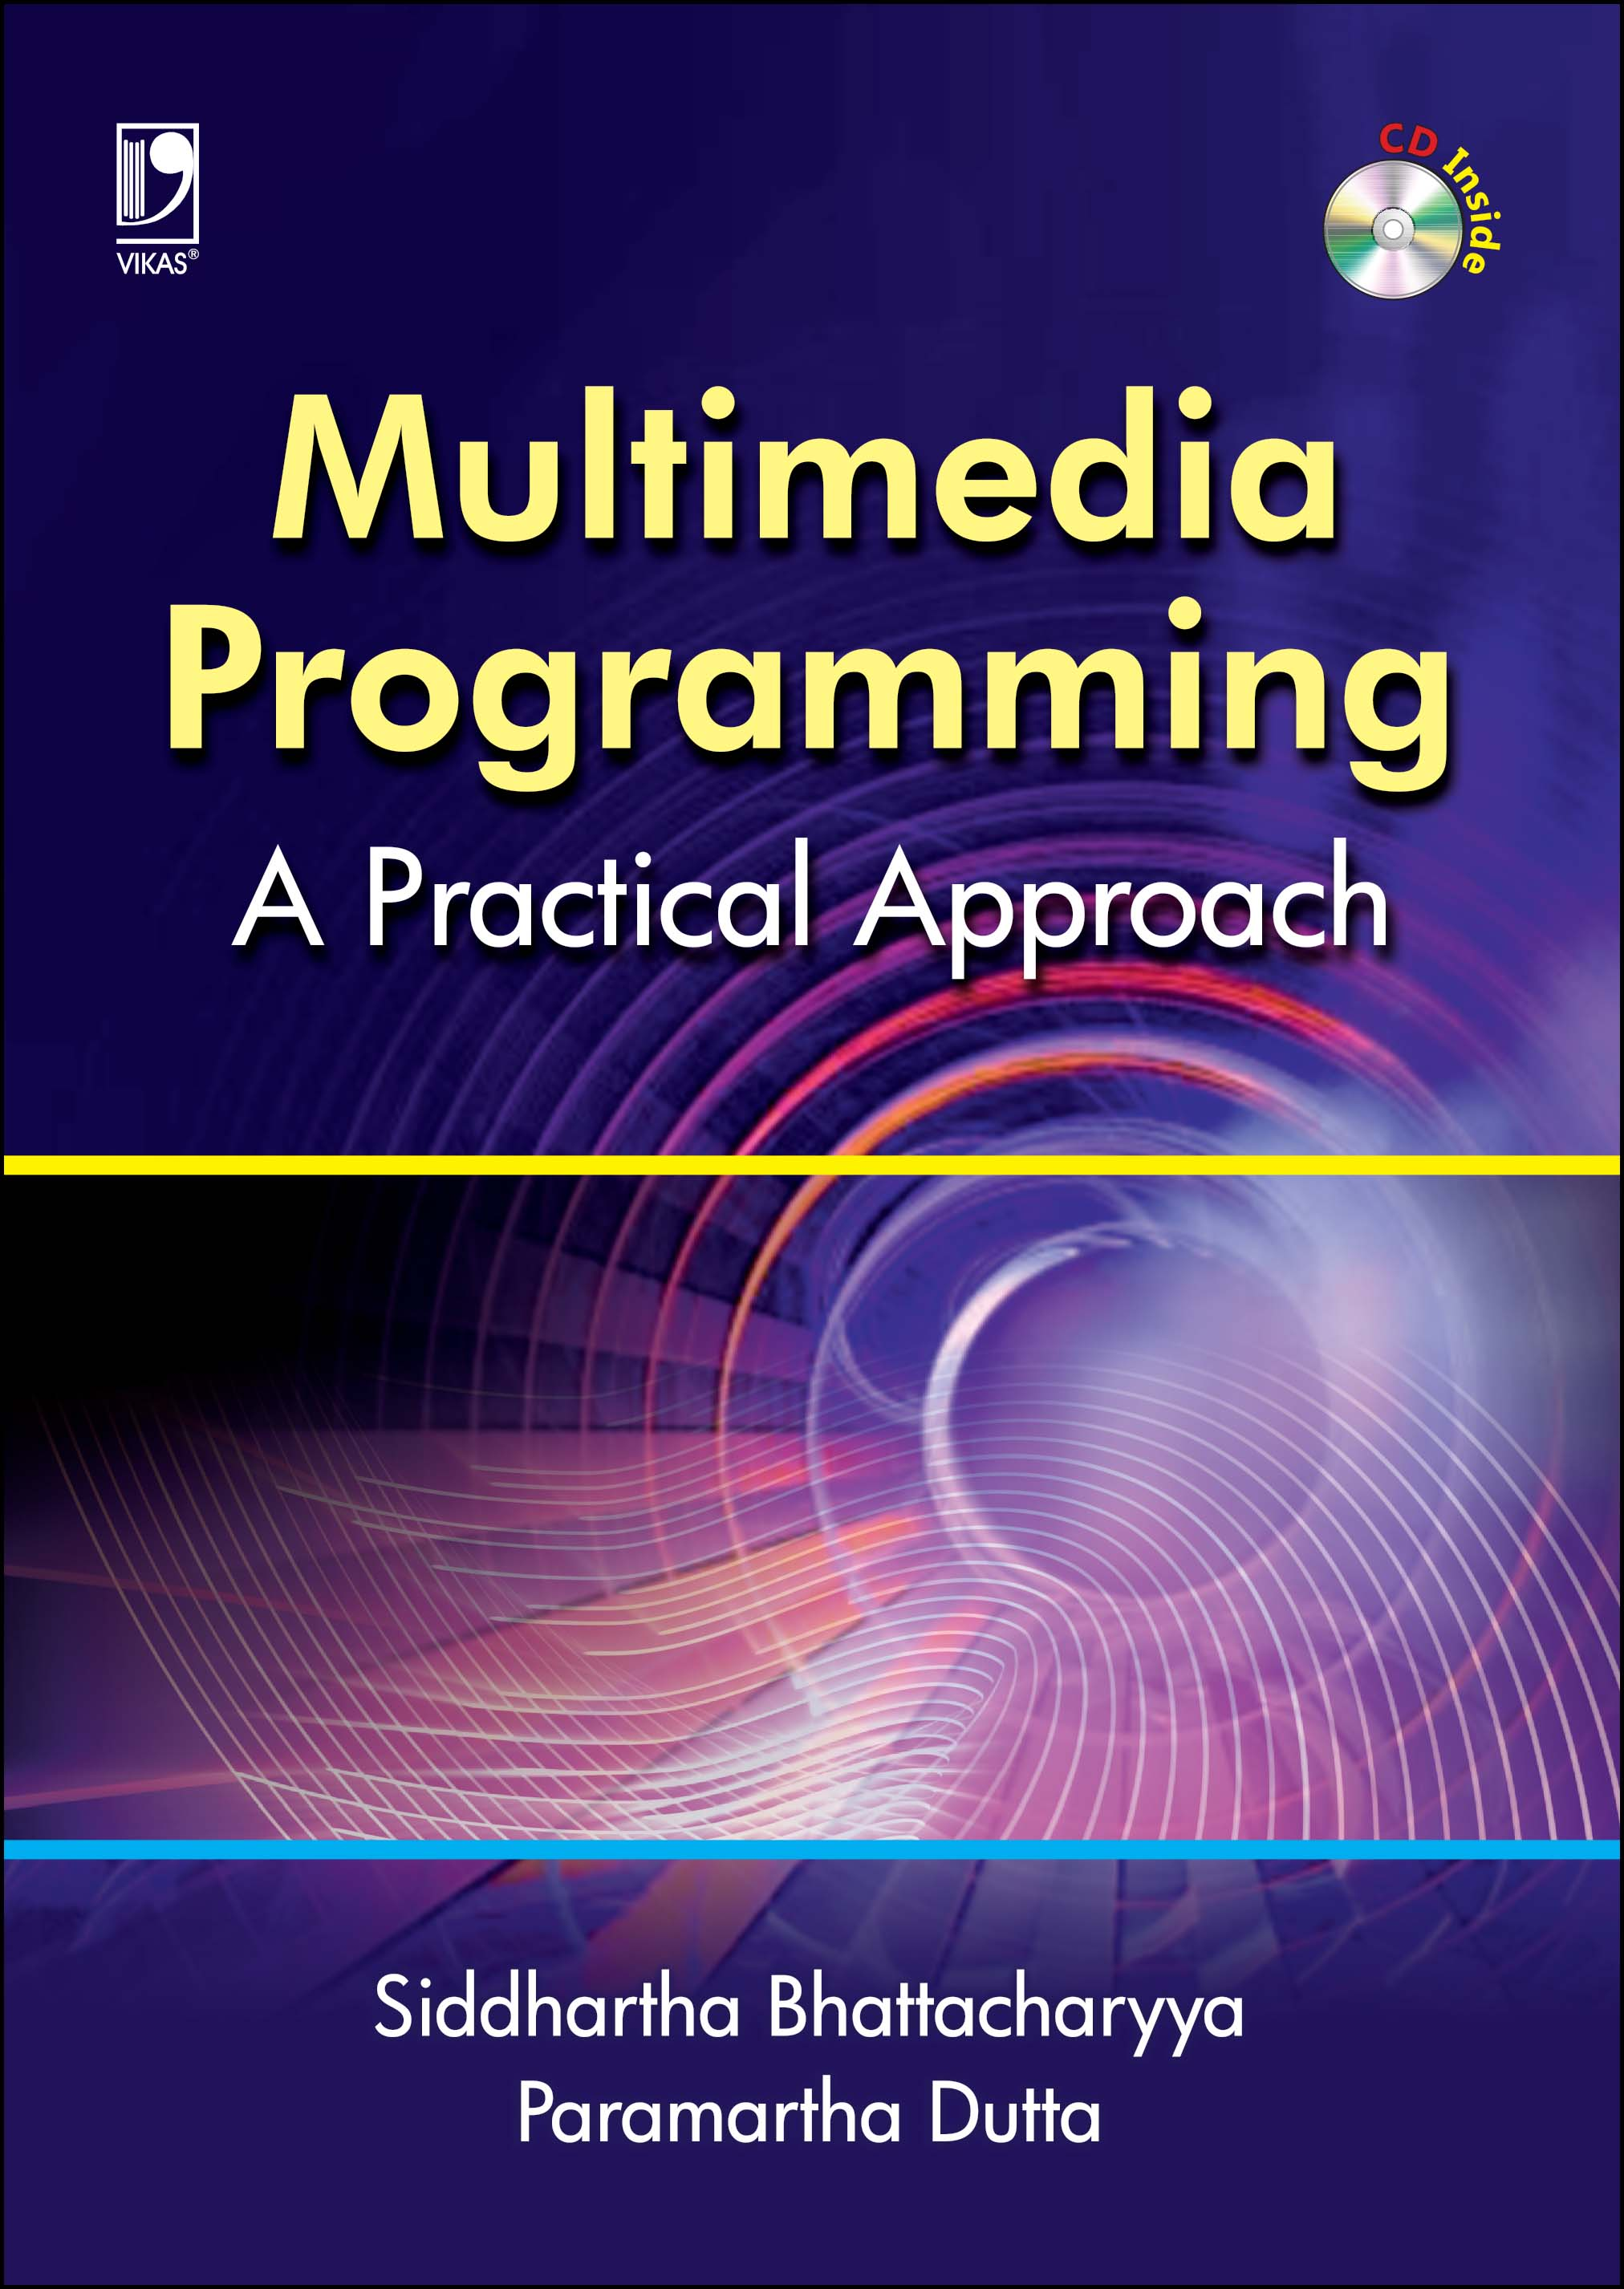 MULTIMEDIA PROGRAMMING: A PRACTICAL APPROACH